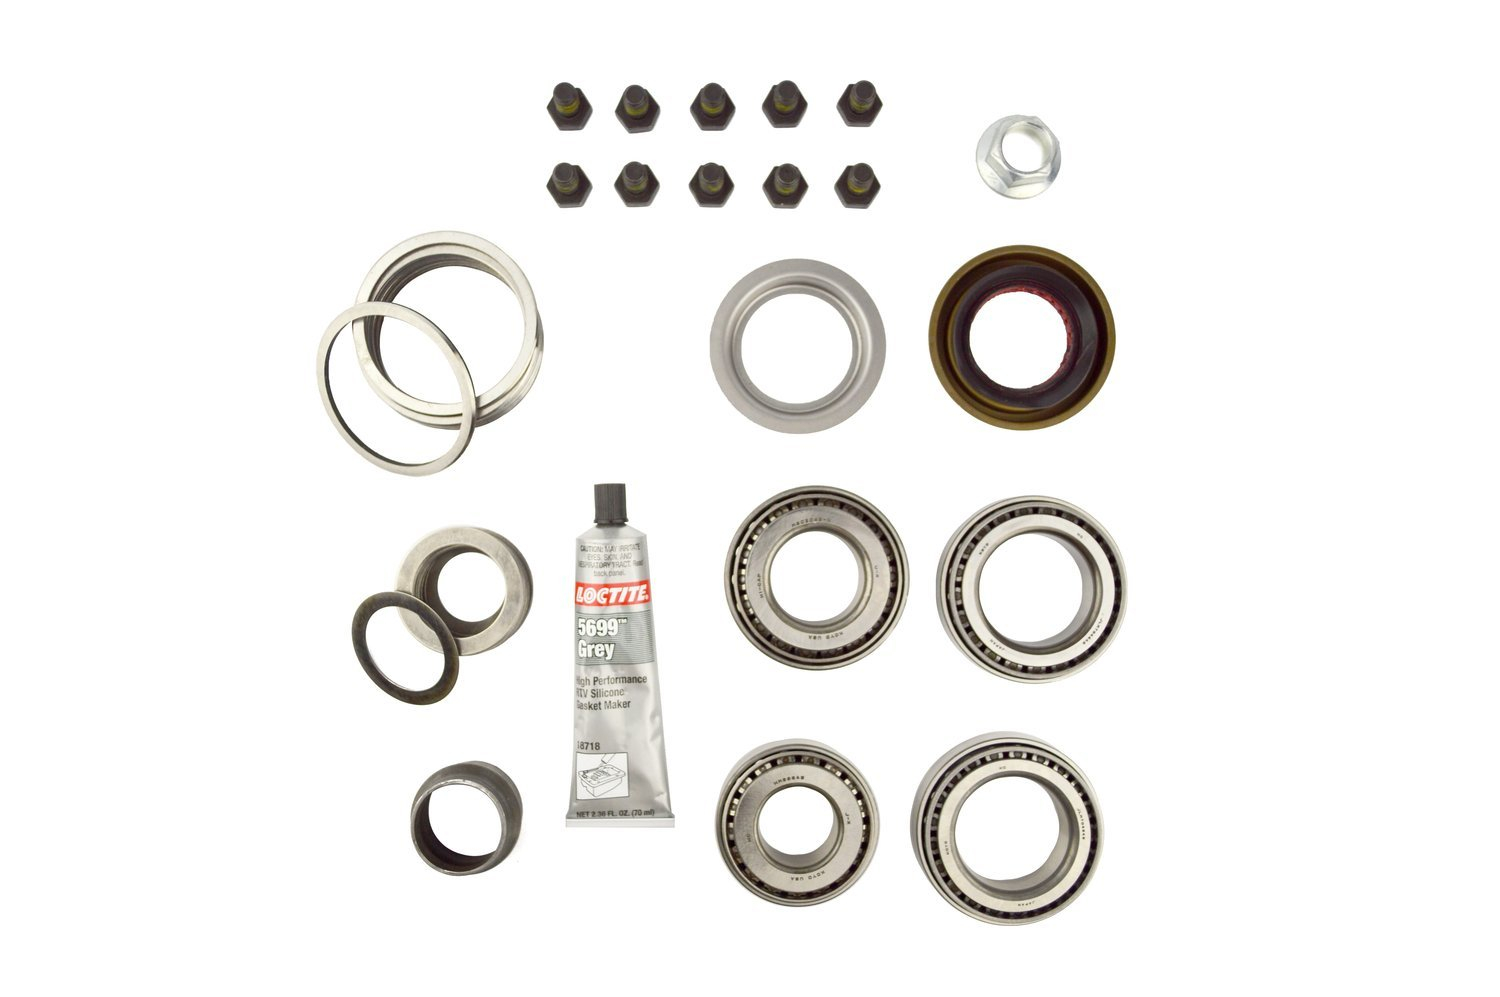 Spicer 2017106 Axle Bearing Repair Kit by Spicer